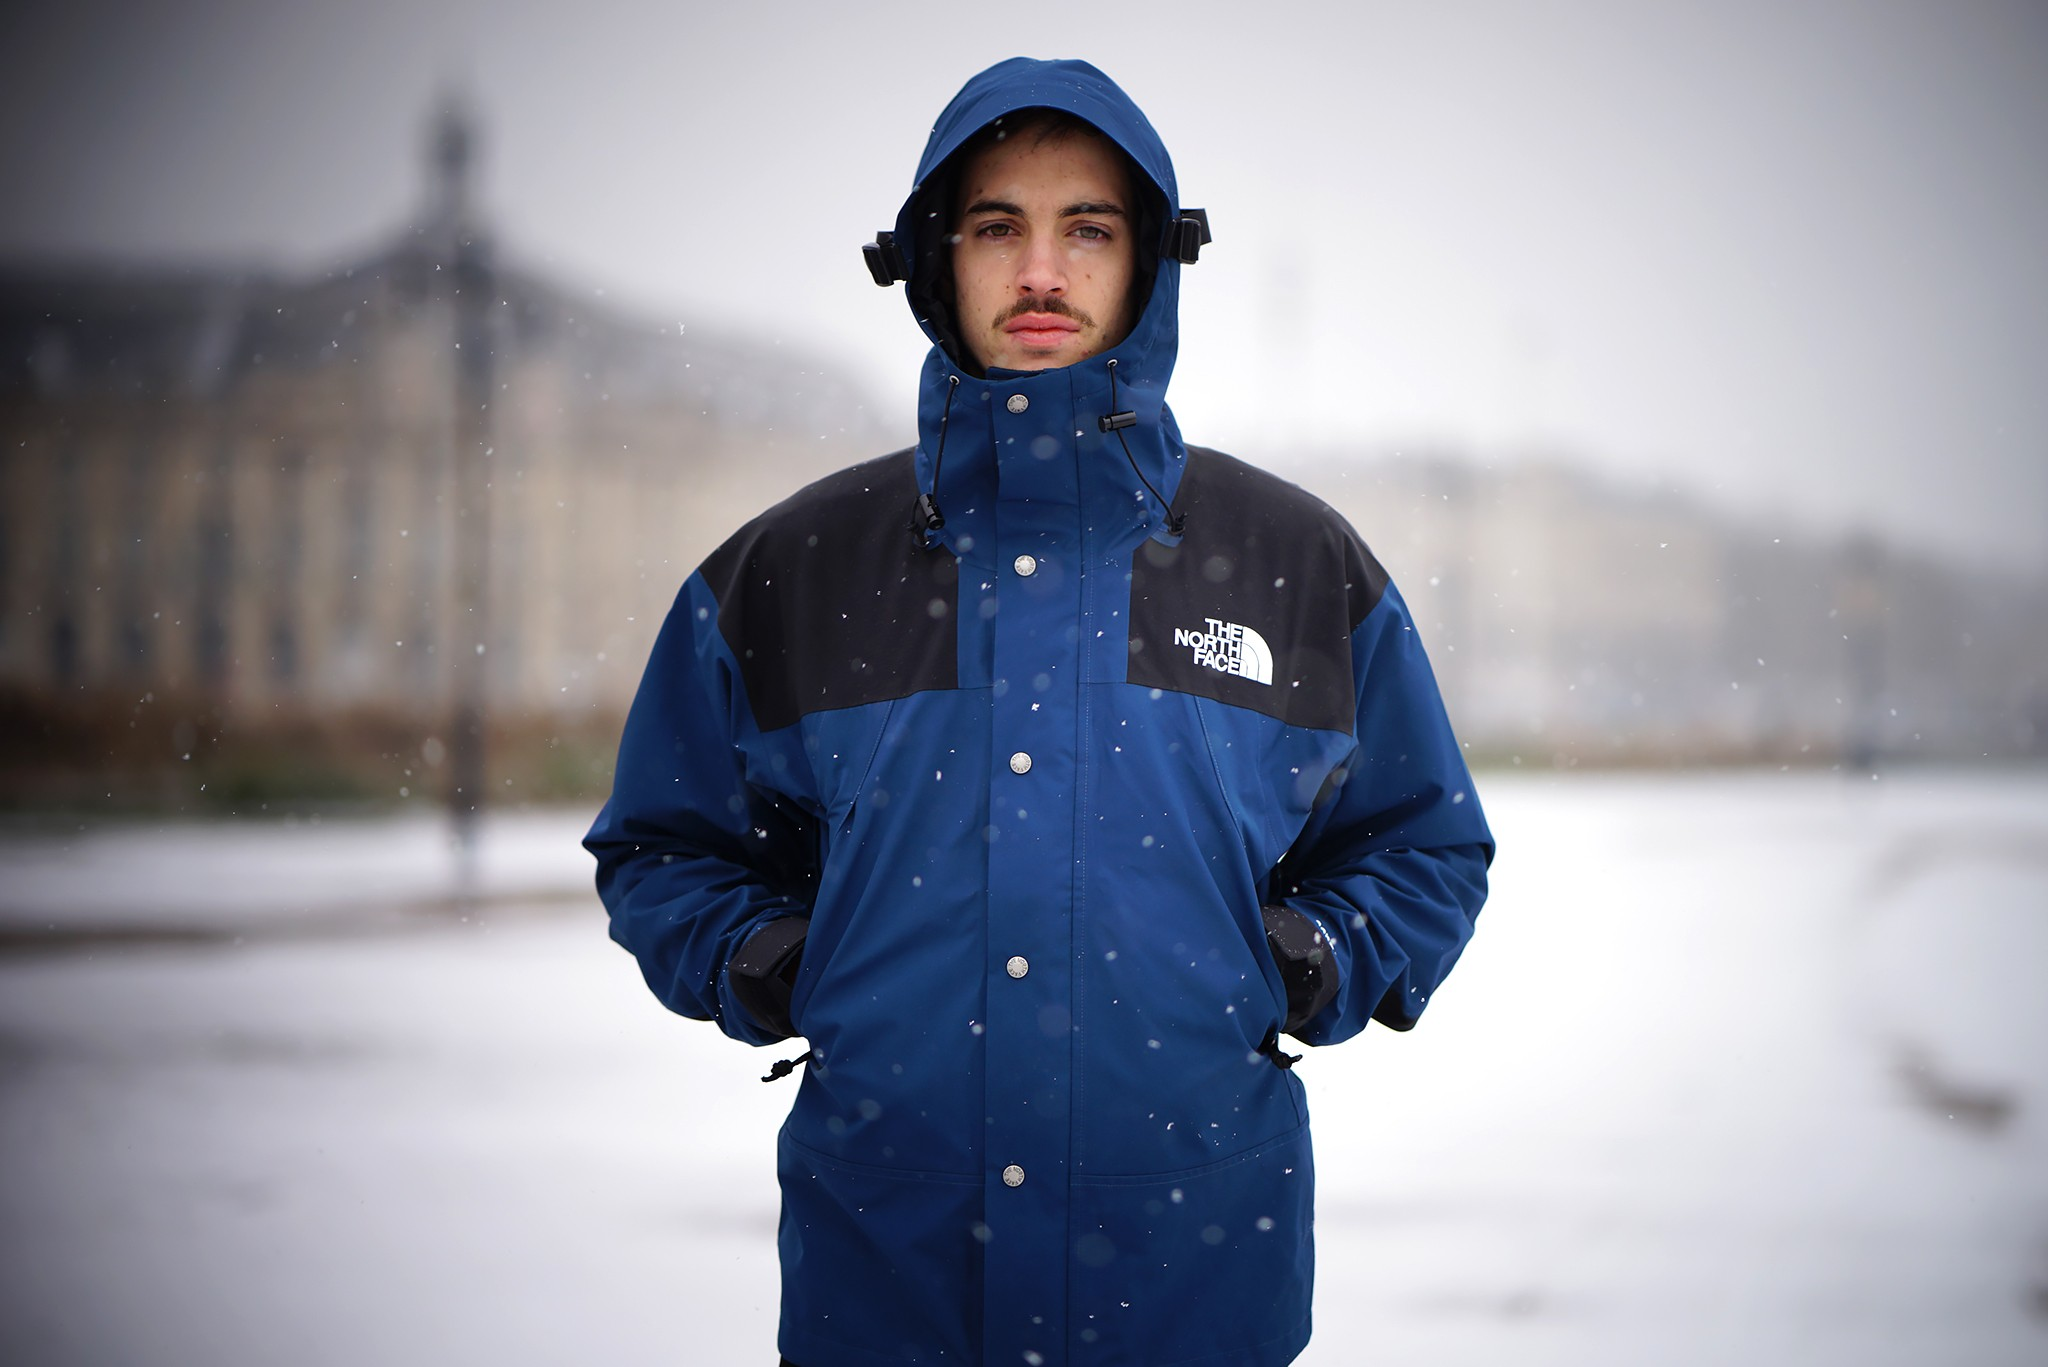 THE NORTH FACE NEW COLLECTION IS IN